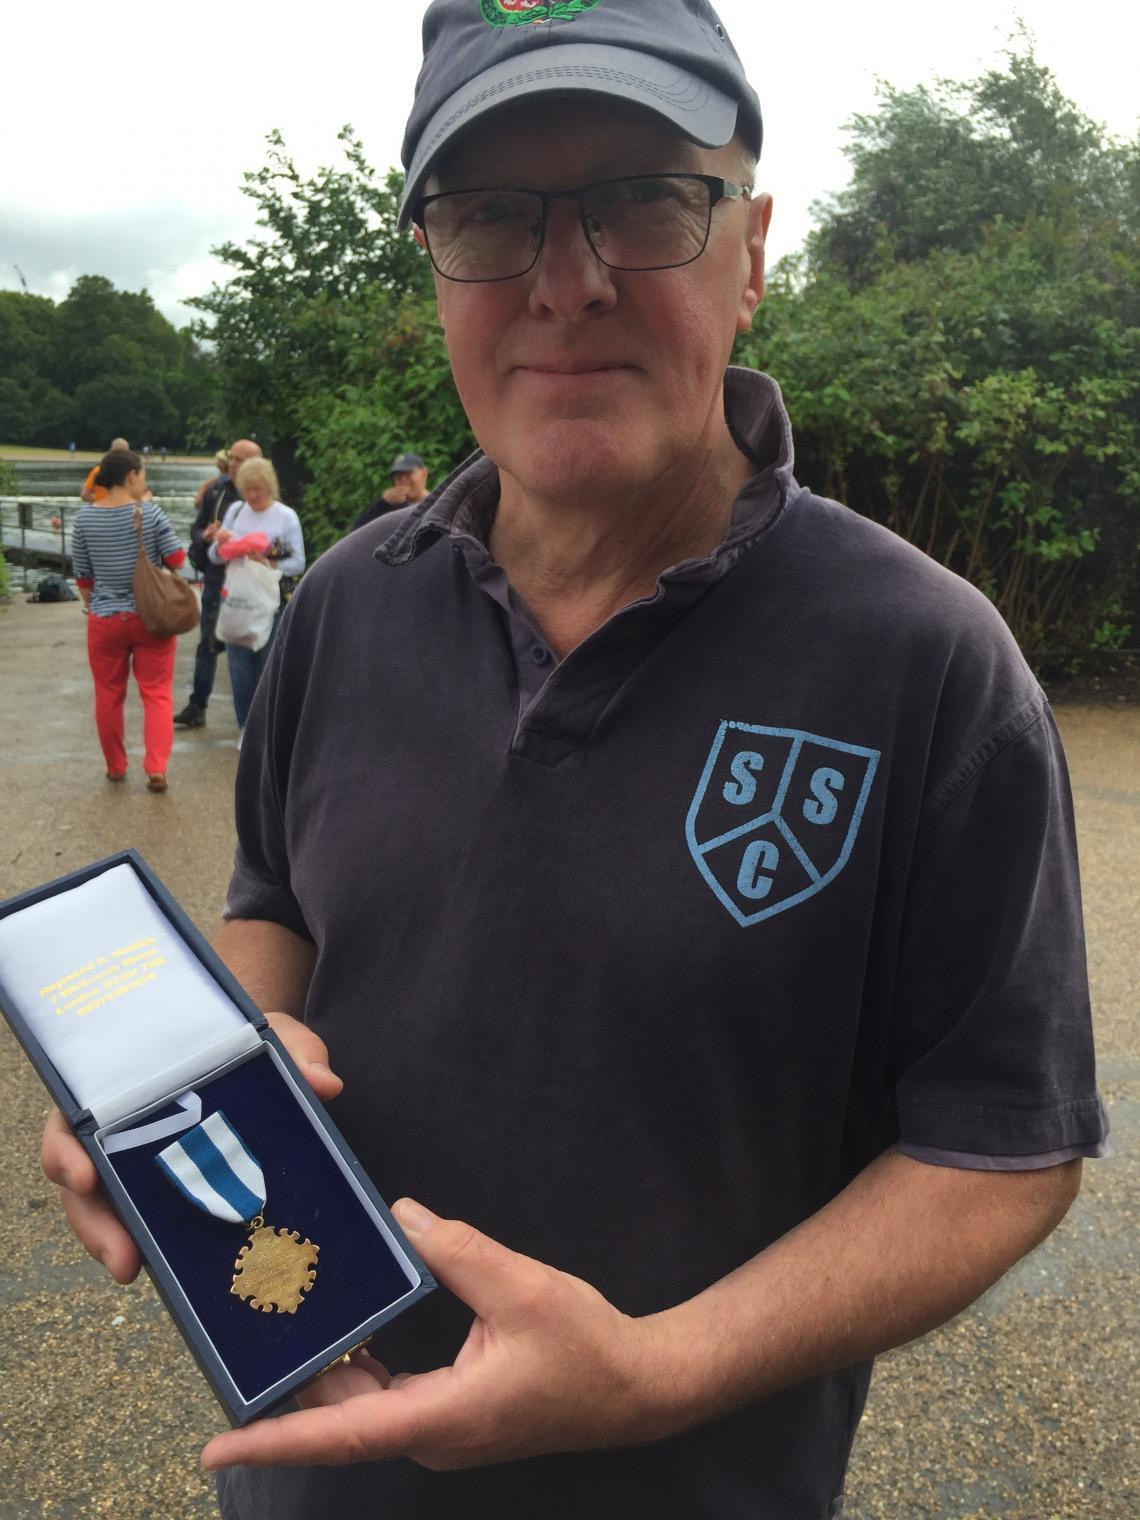 Bobby Baxter showing his grandfather's 1889 Christmas Day medal